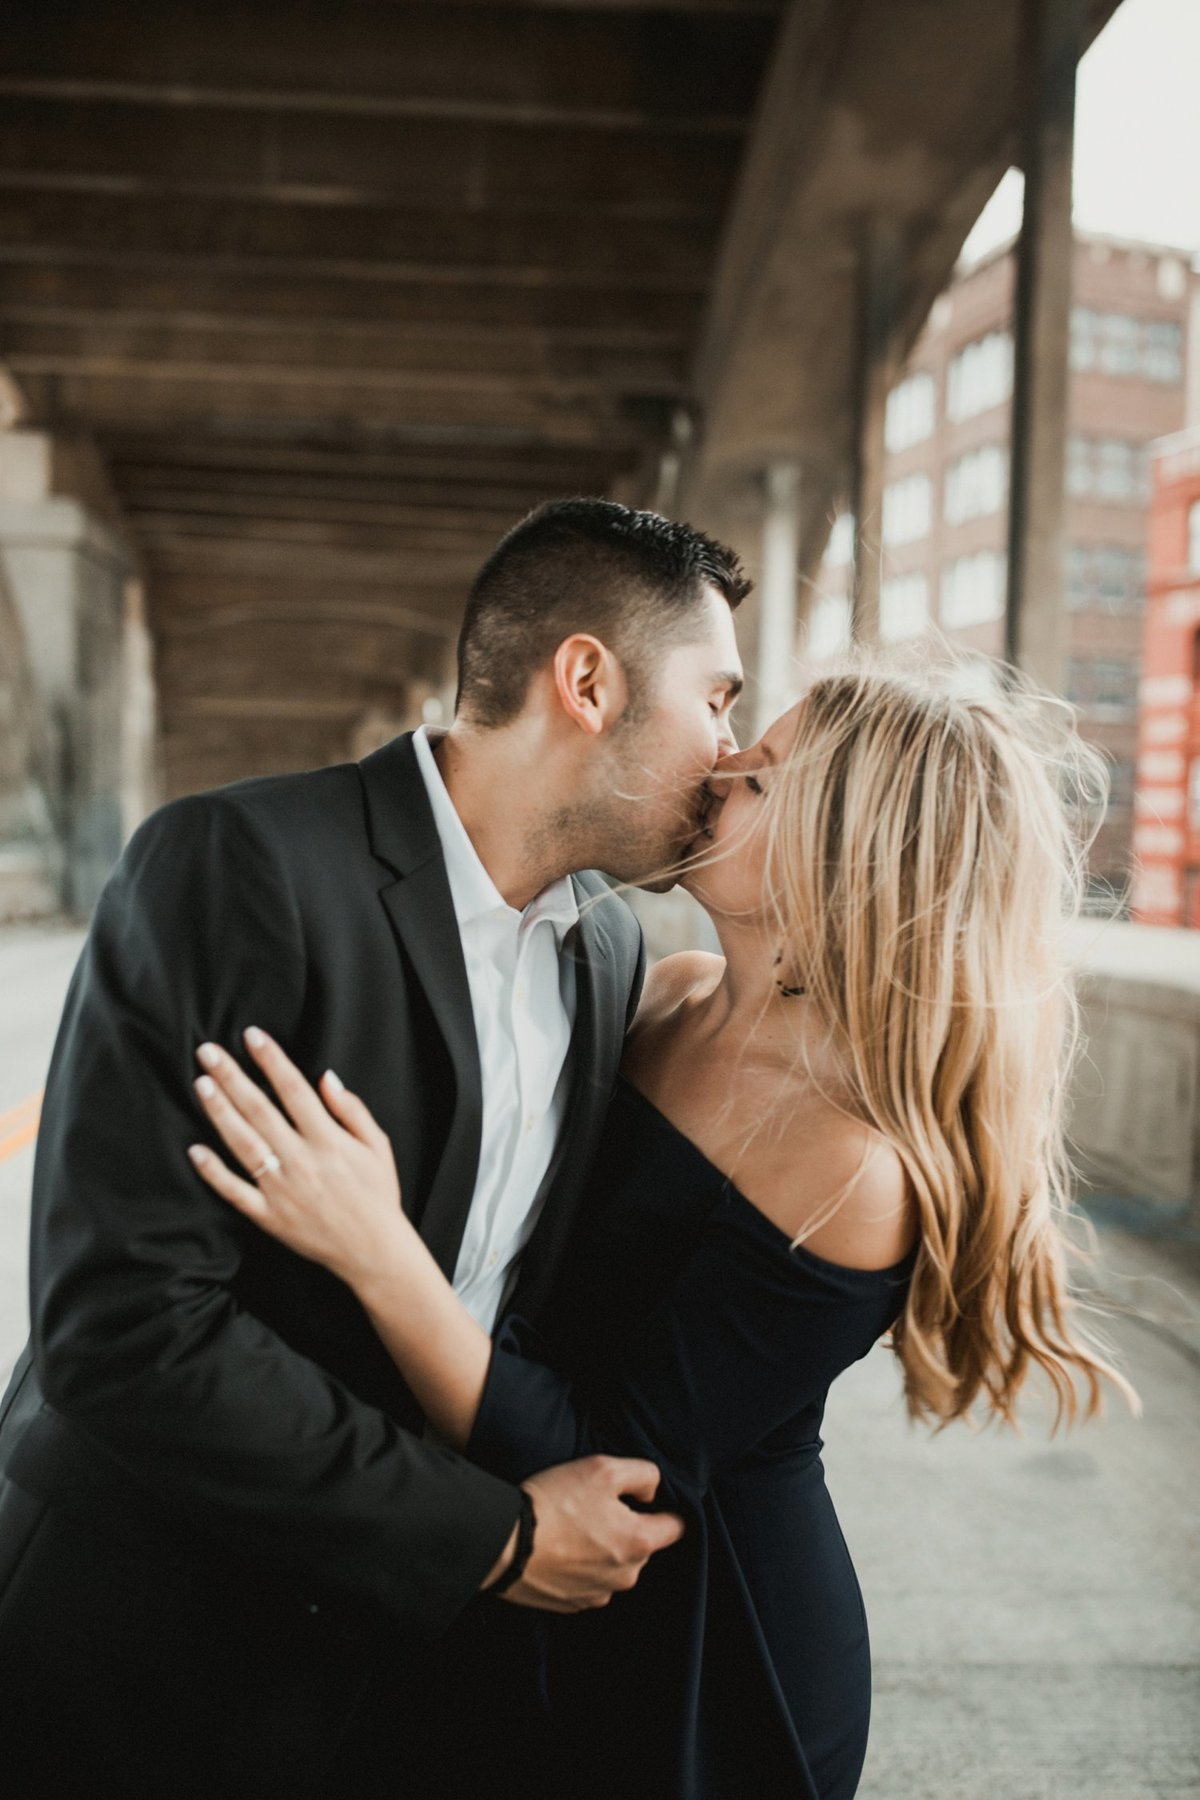 Kansas City Salt Lake City Destination Wedding Photographer_0232